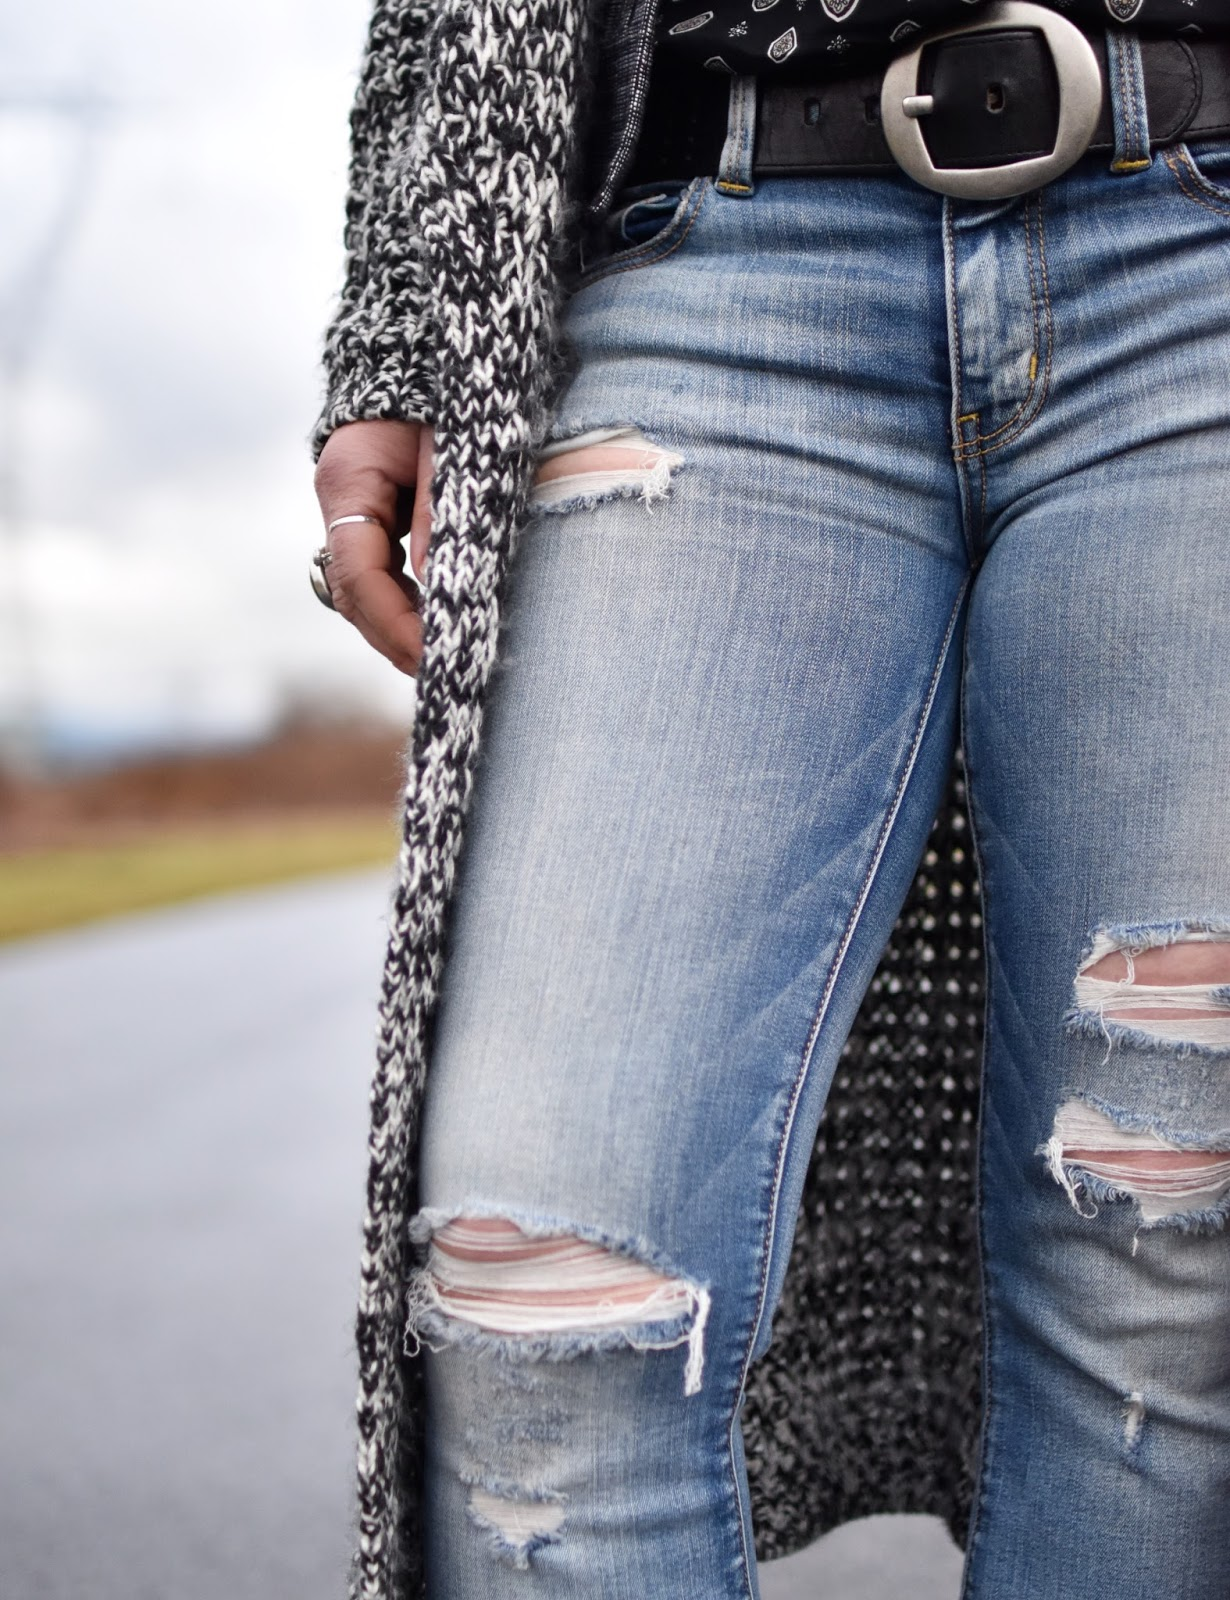 Monika Faulkner outfit inspiration - distressed flare jeans, long cardigan